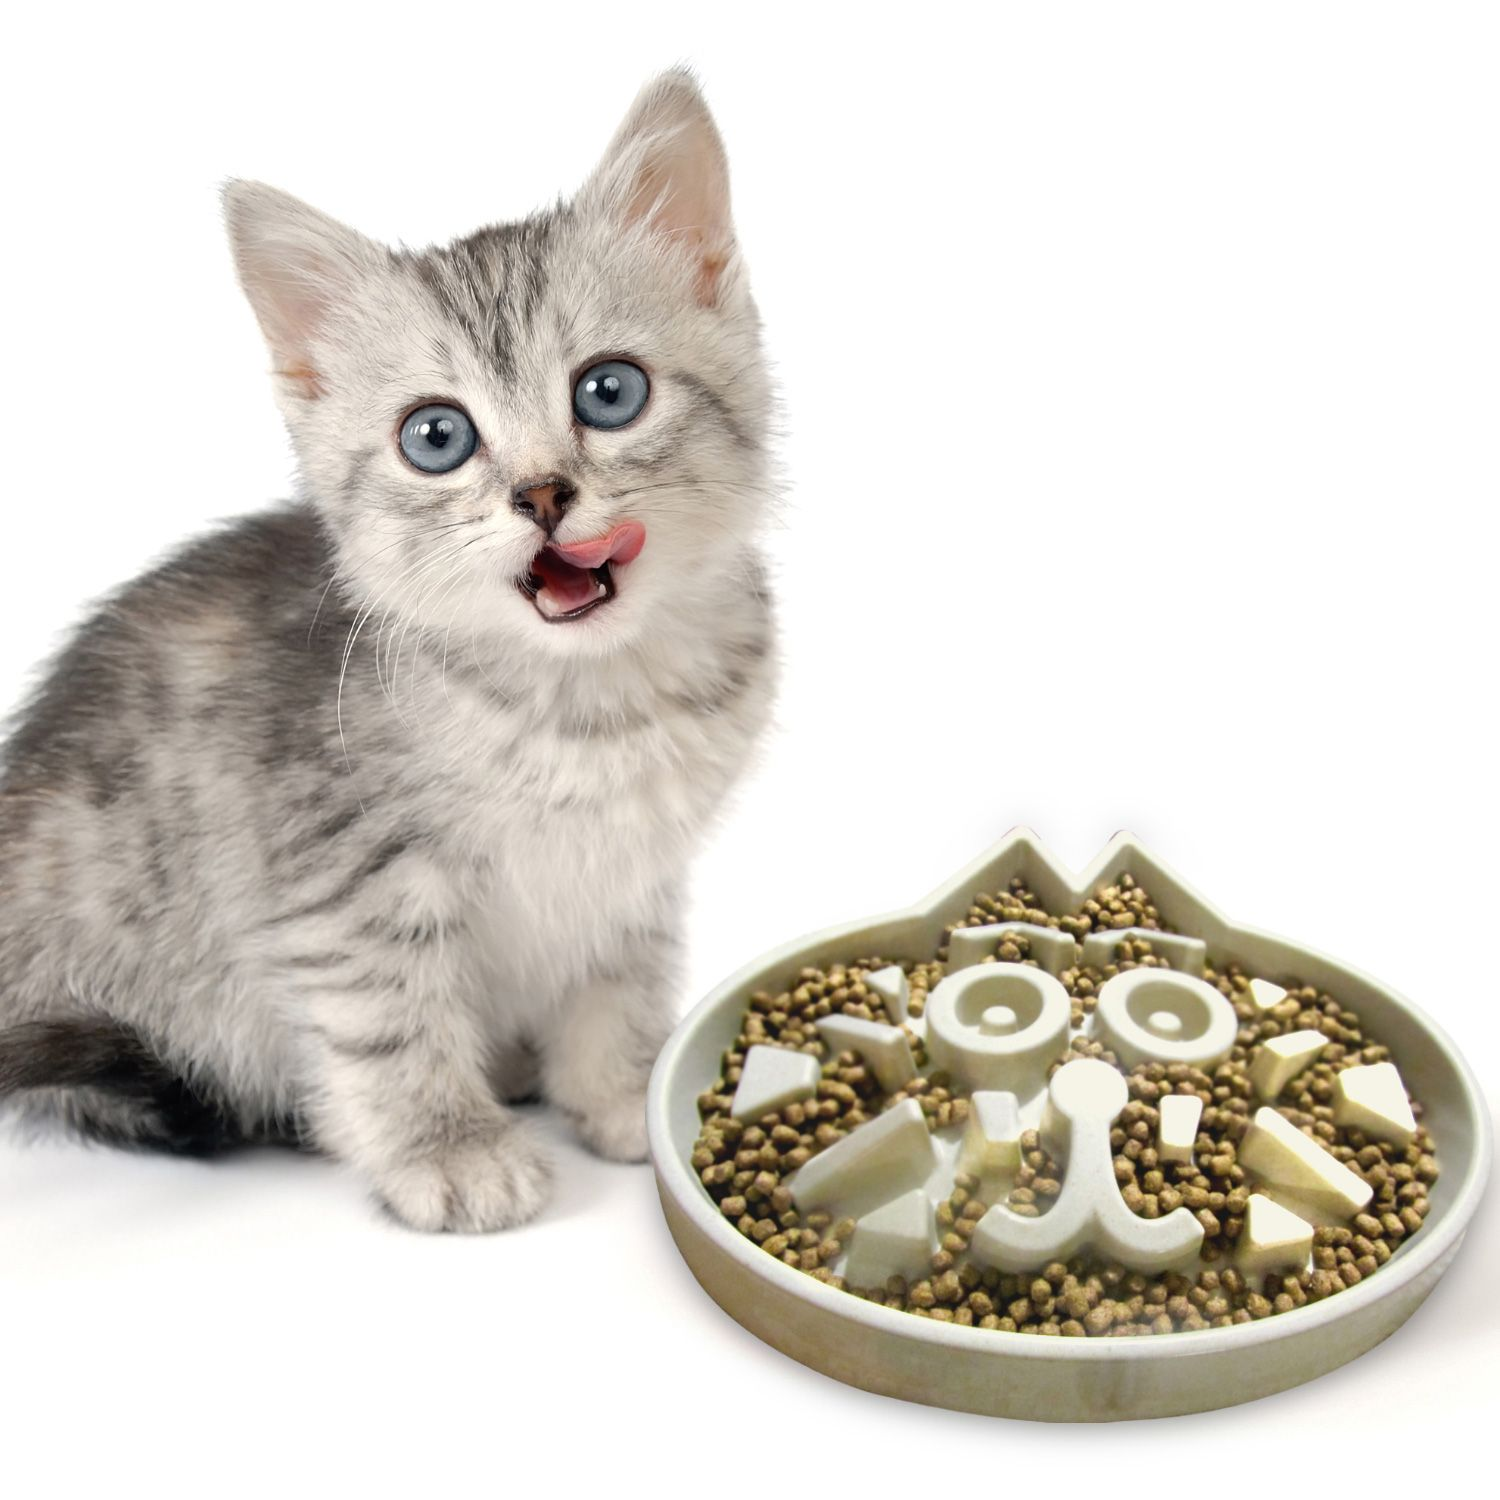 Do you know, best food for your cat? Best cat food, Cat